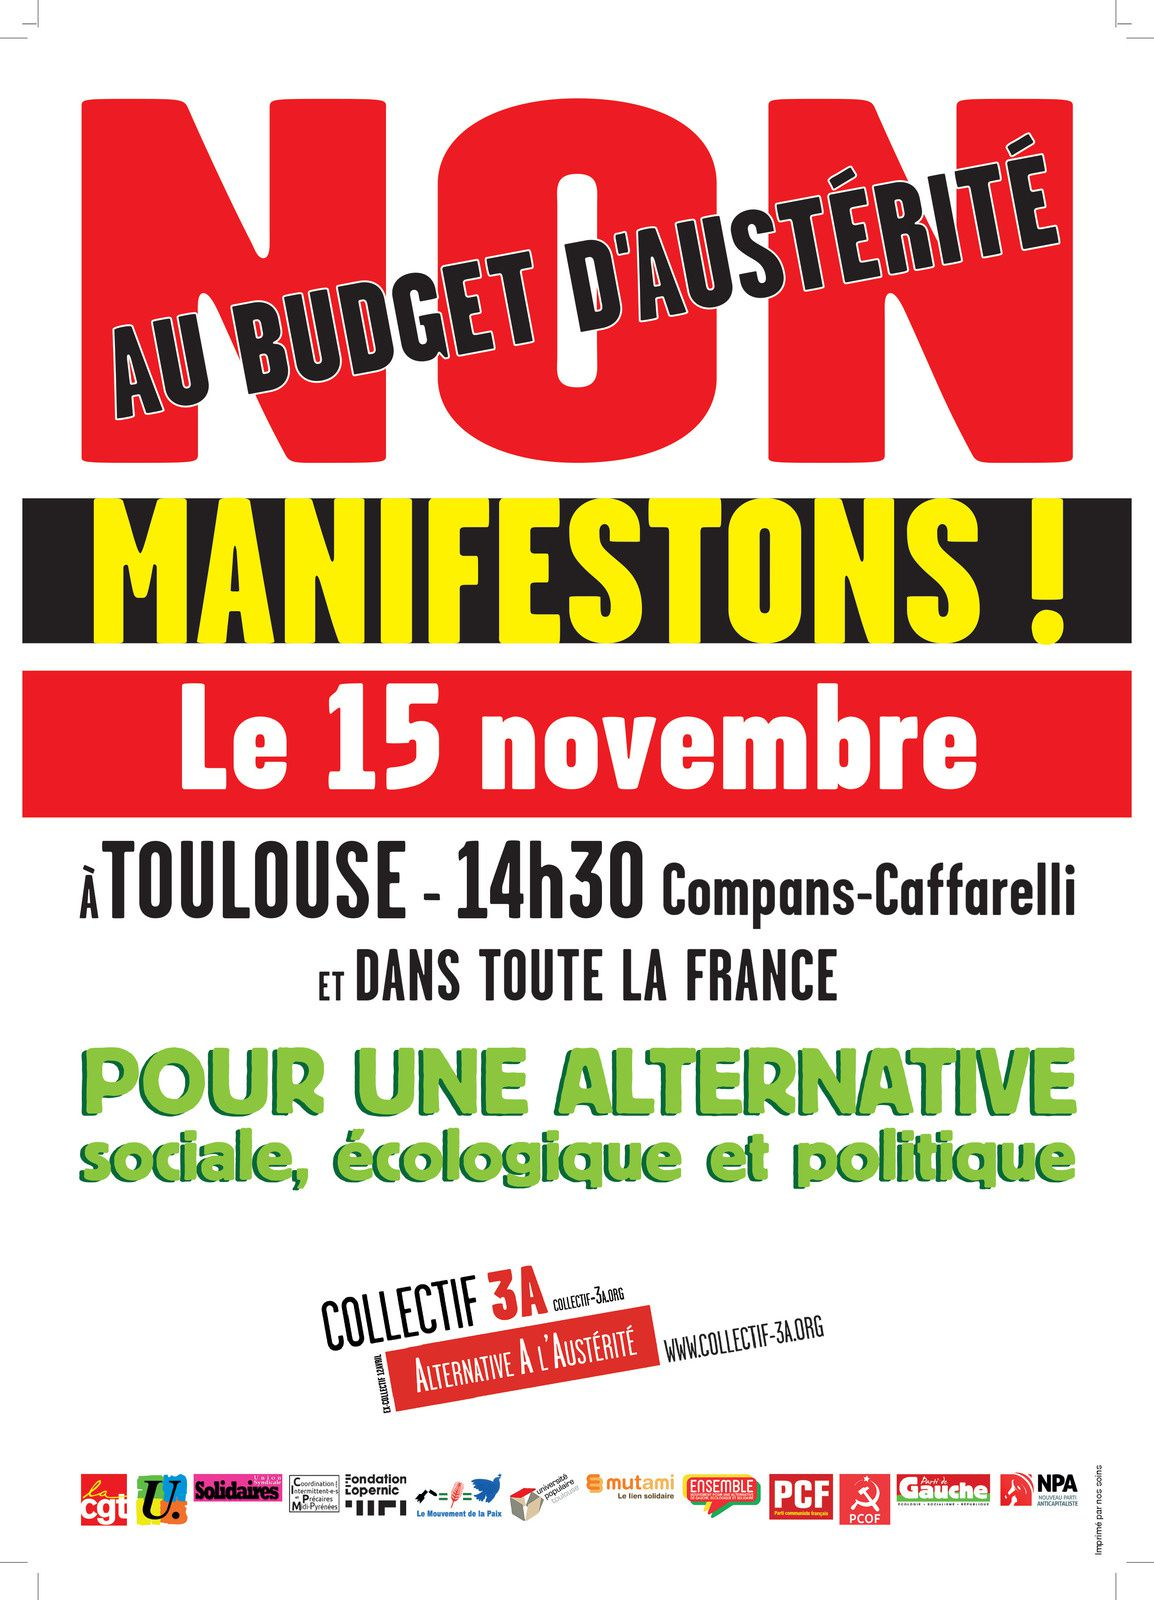 Collectif 3A Alternative À l'Austérité : mobilisation le 15 novembre